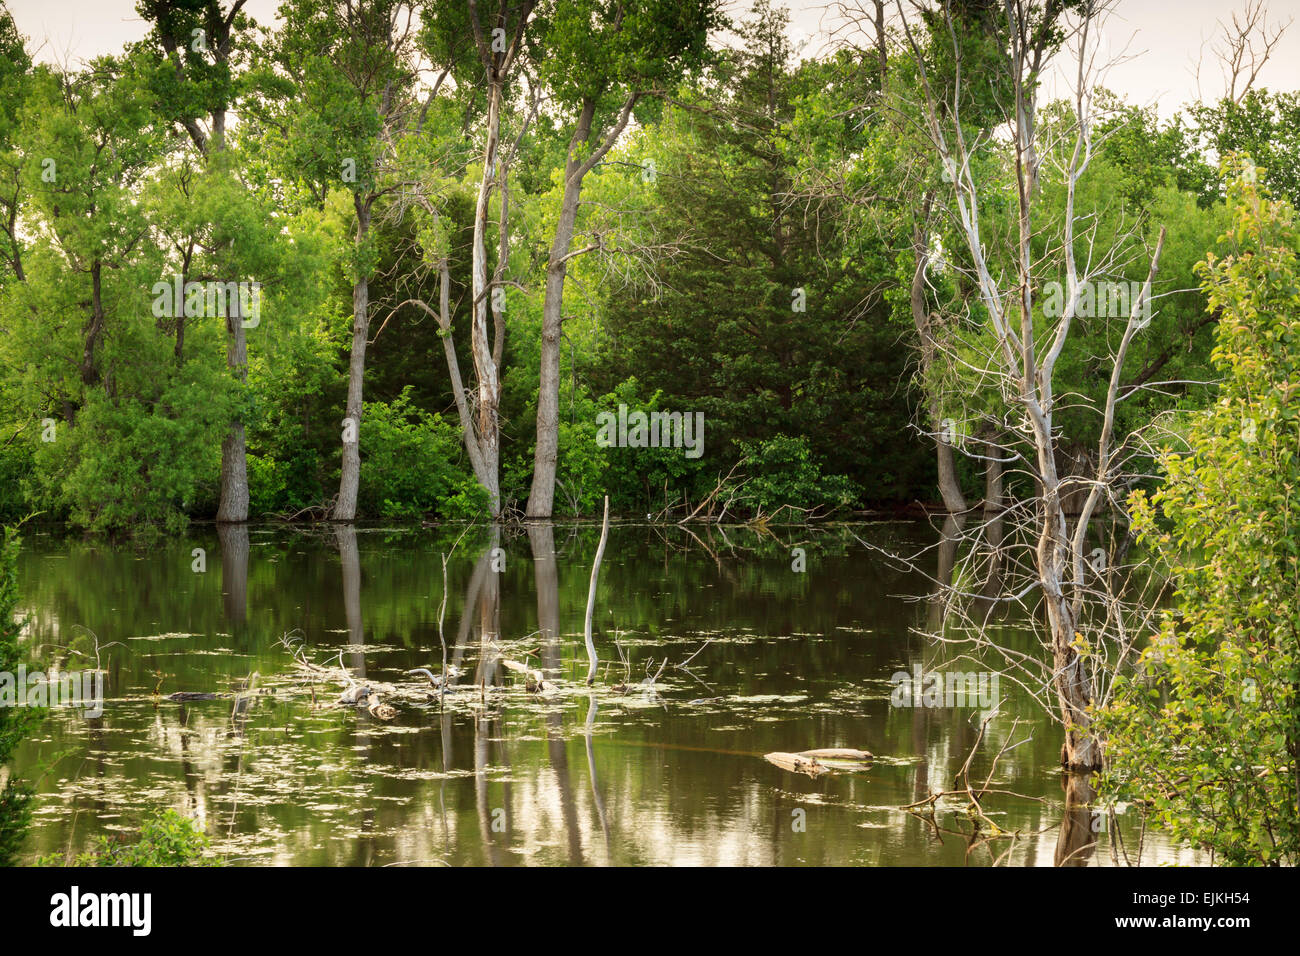 A small pond surrounded by thick green foliage in rural Oklahoma City, - Stock Image